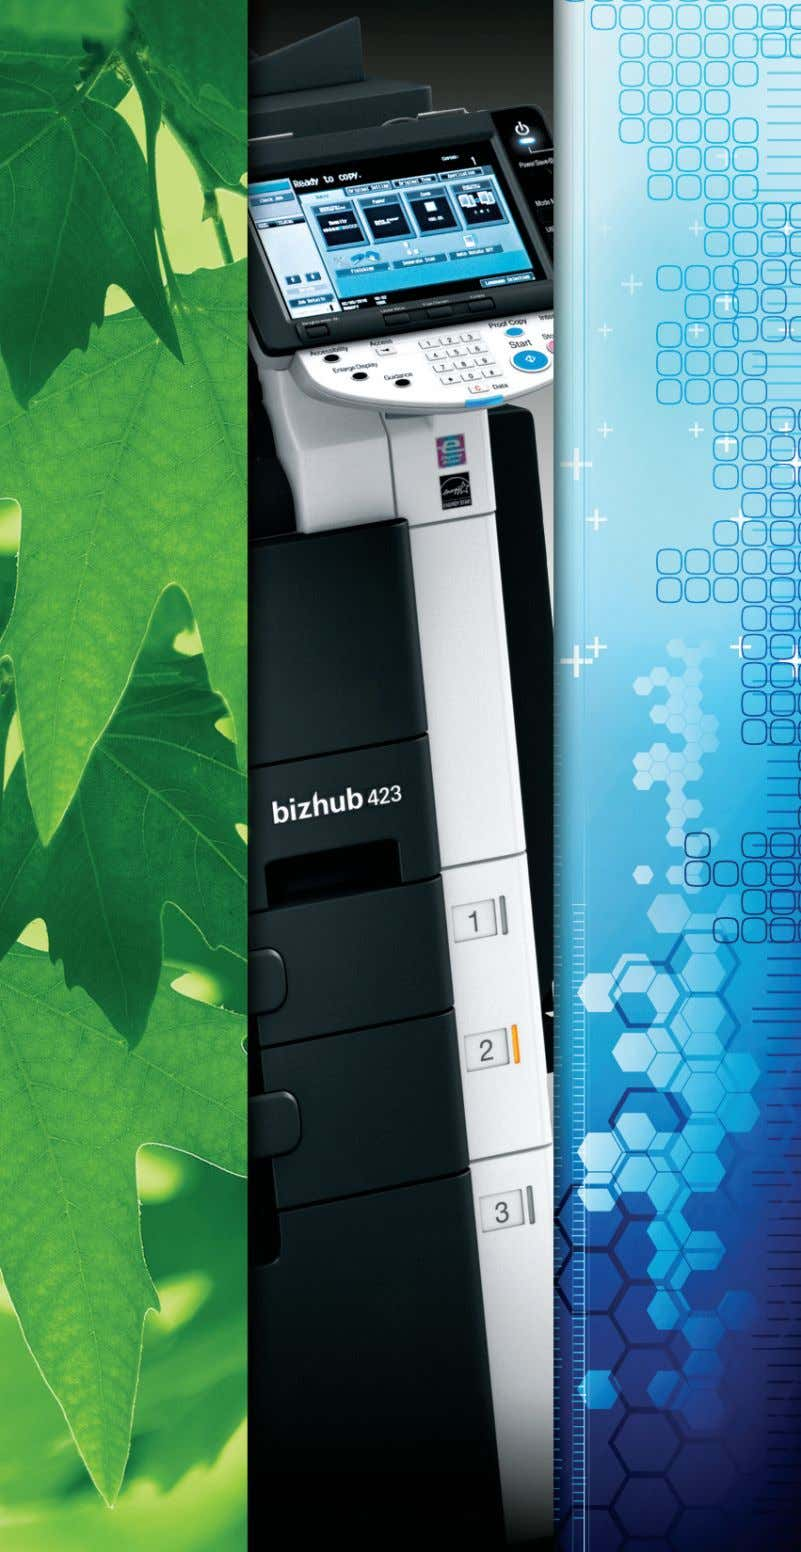 As part of Konica Minolta's efforts towards preserving the environment, this e-brochure is intended for